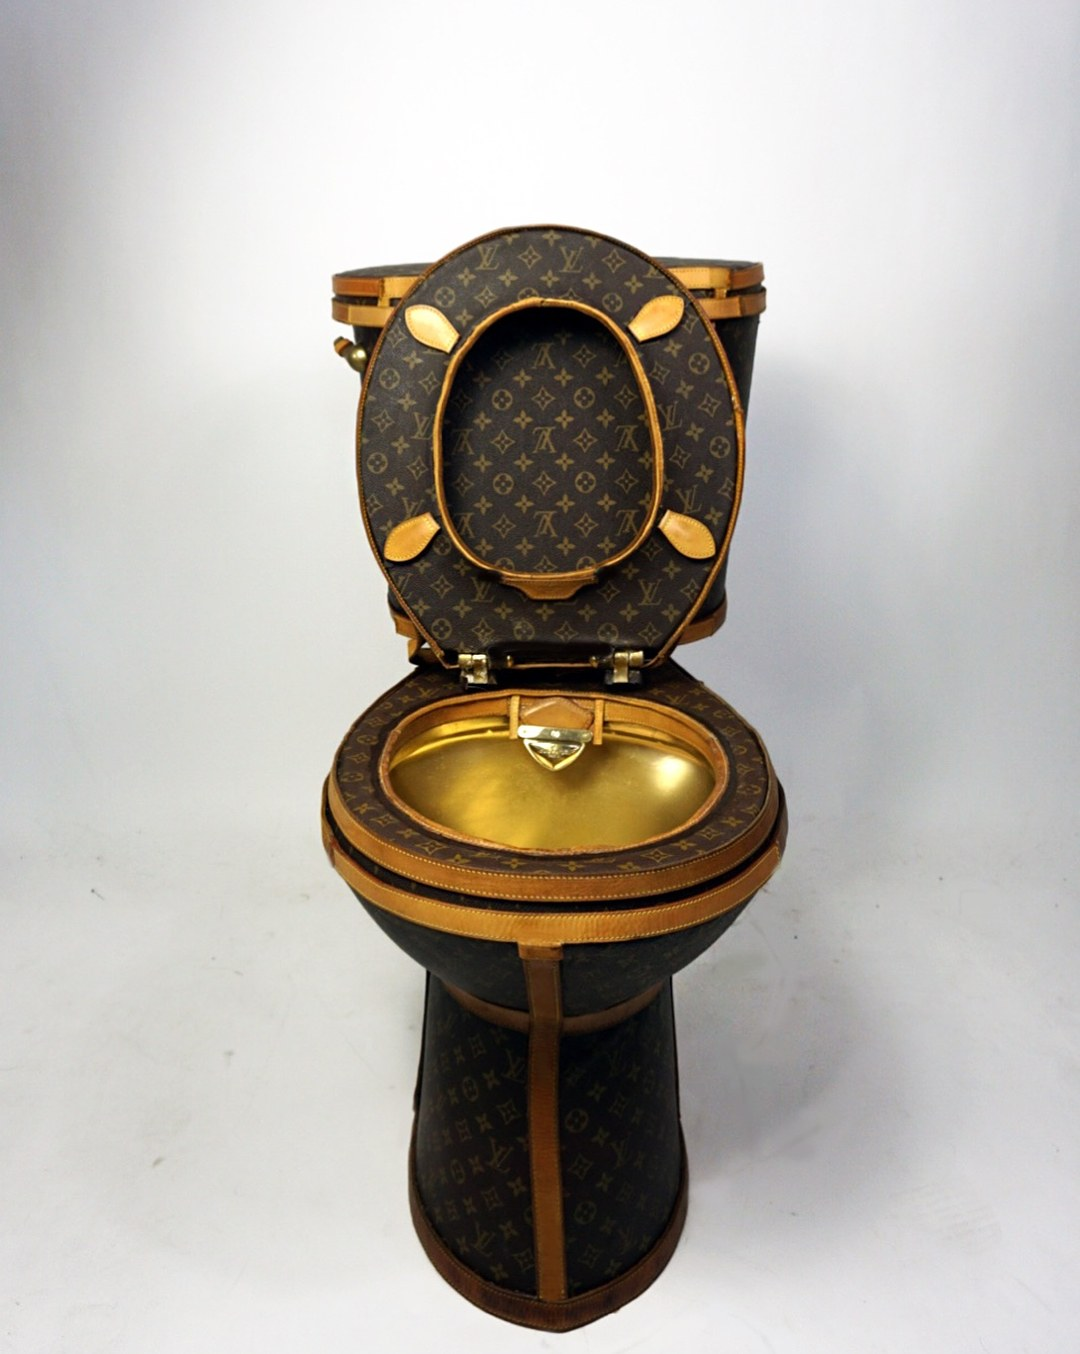 How About a US$100,000 Louis Vuitton Commode That Actually Works?